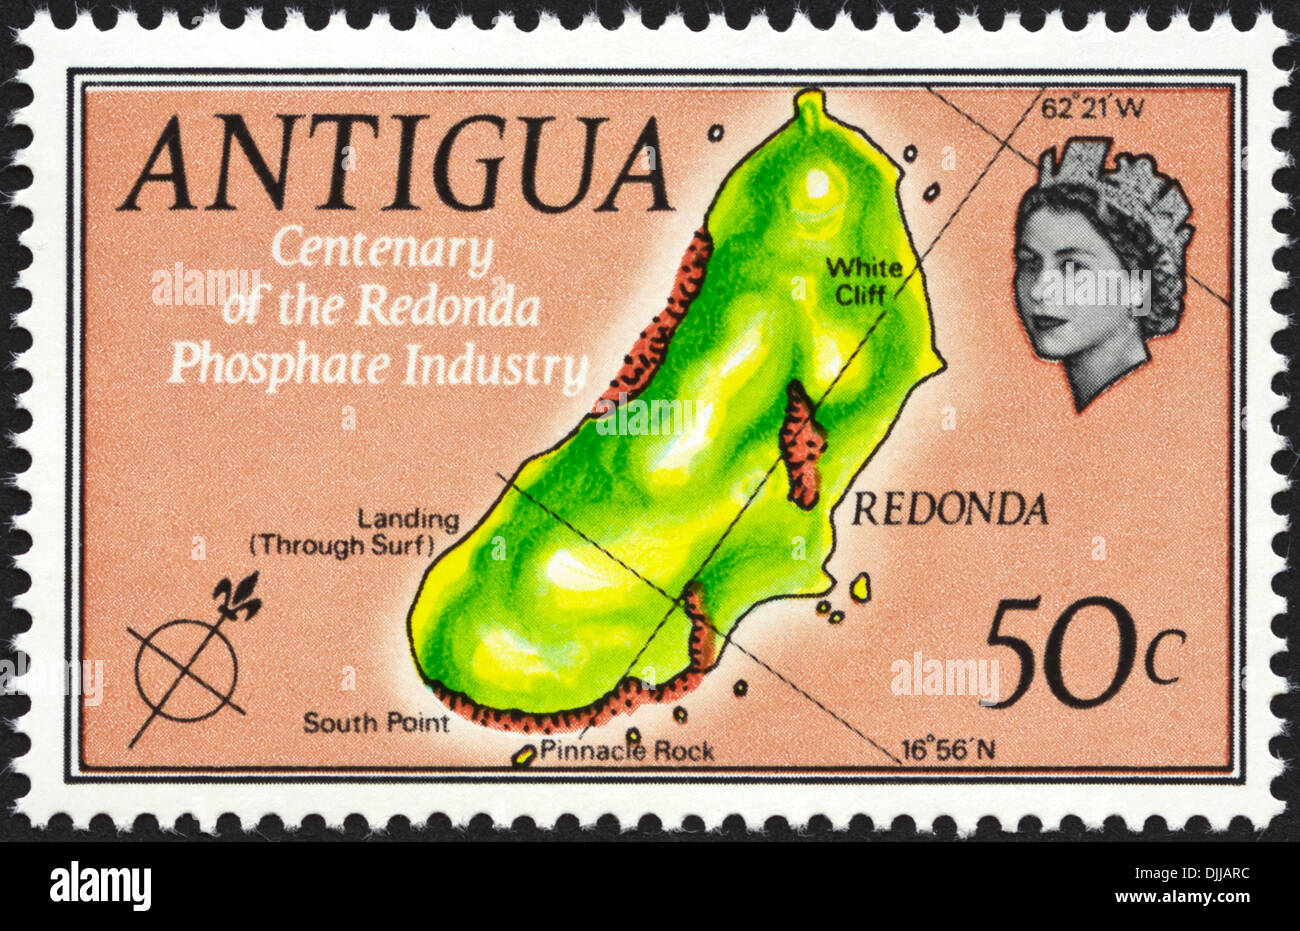 postage stamp Antigua 50c featuring Centenary of the Redonda Phosphate Industry issued 1969 - Stock Image